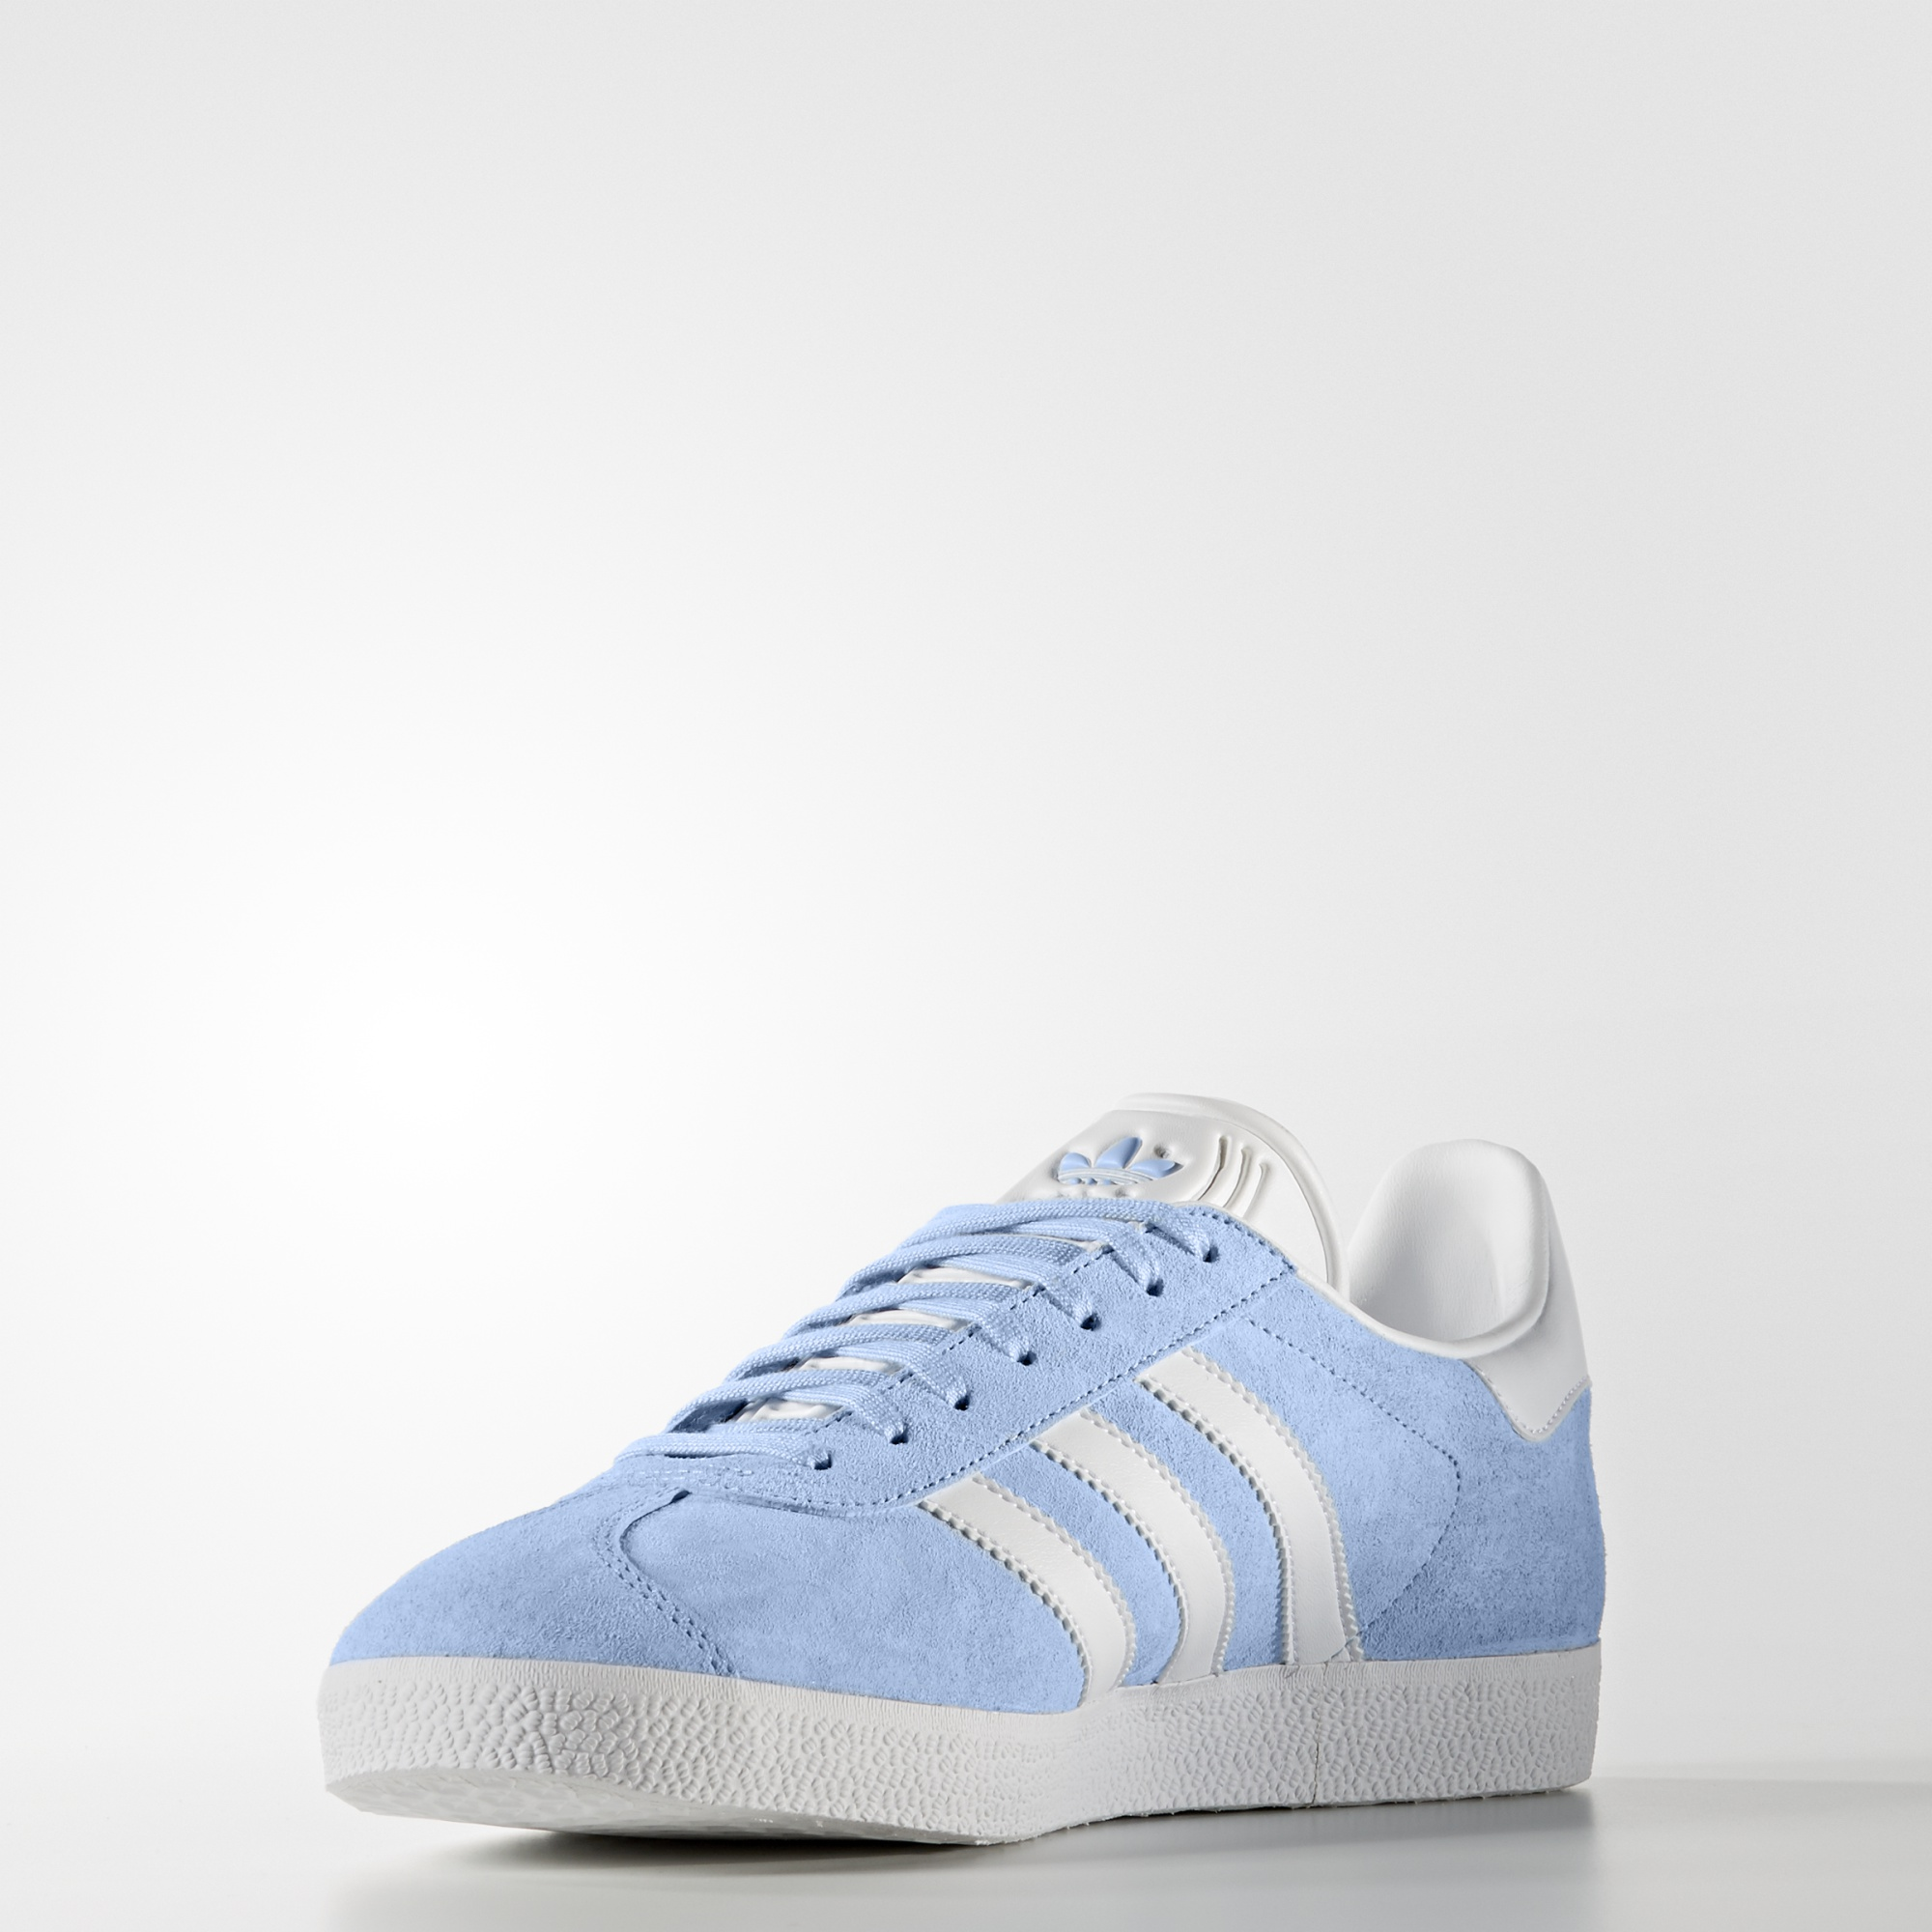 Adidas Gazelle OG trainers reissued in yellow or blue suede